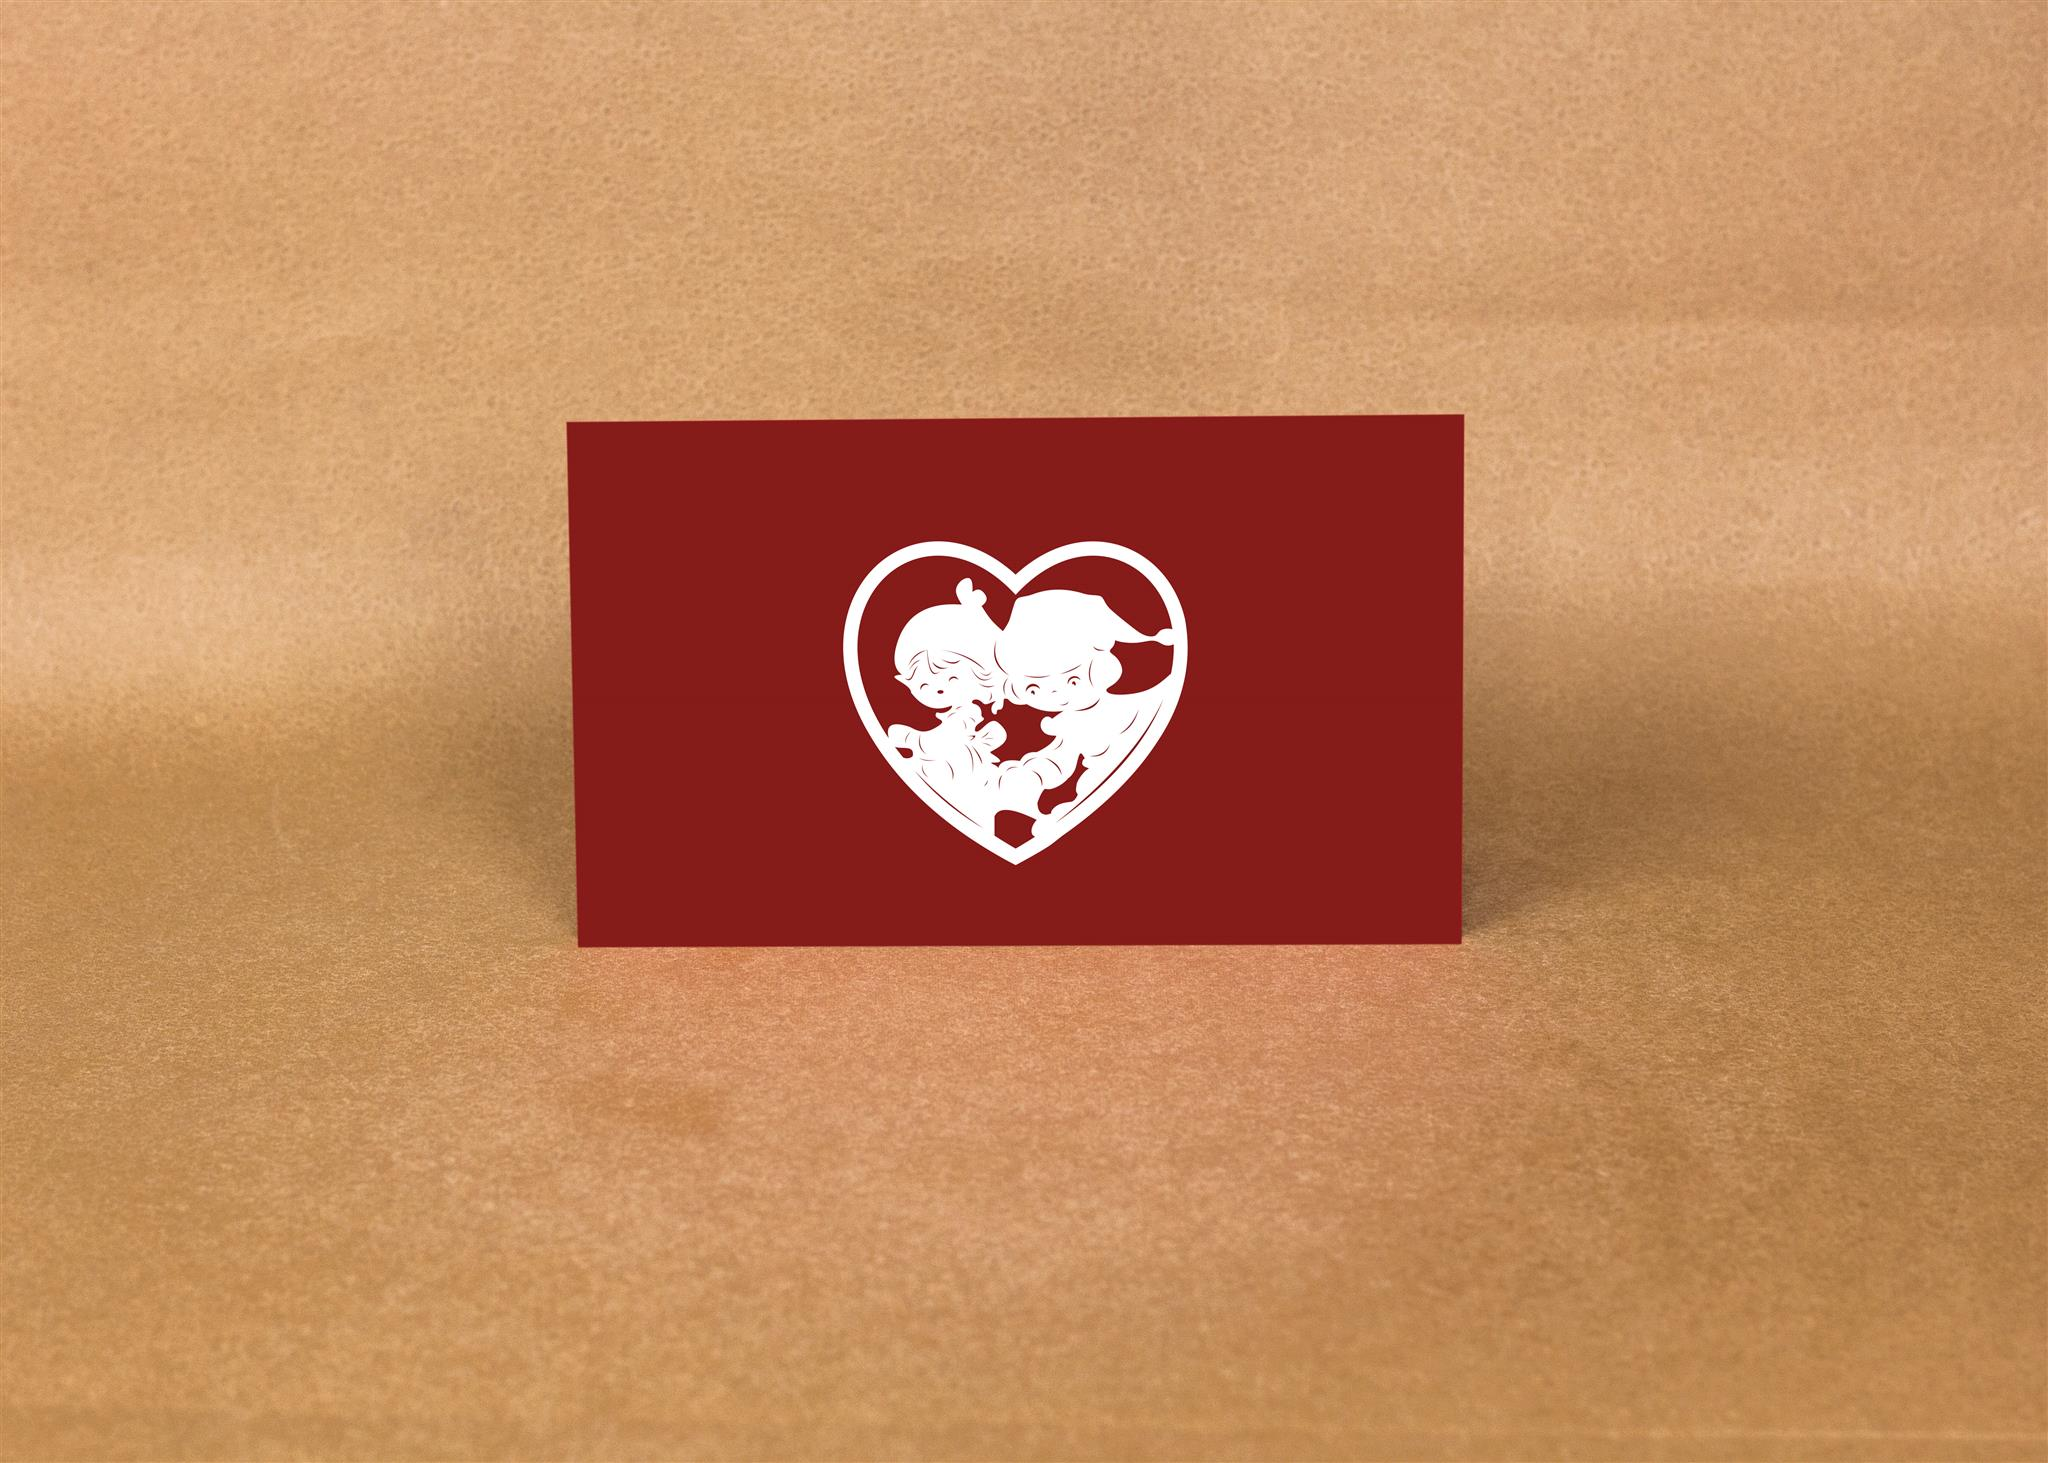 Love Pop Up Cards For Valentine Day Wholesale Pop Up Cards Supplier